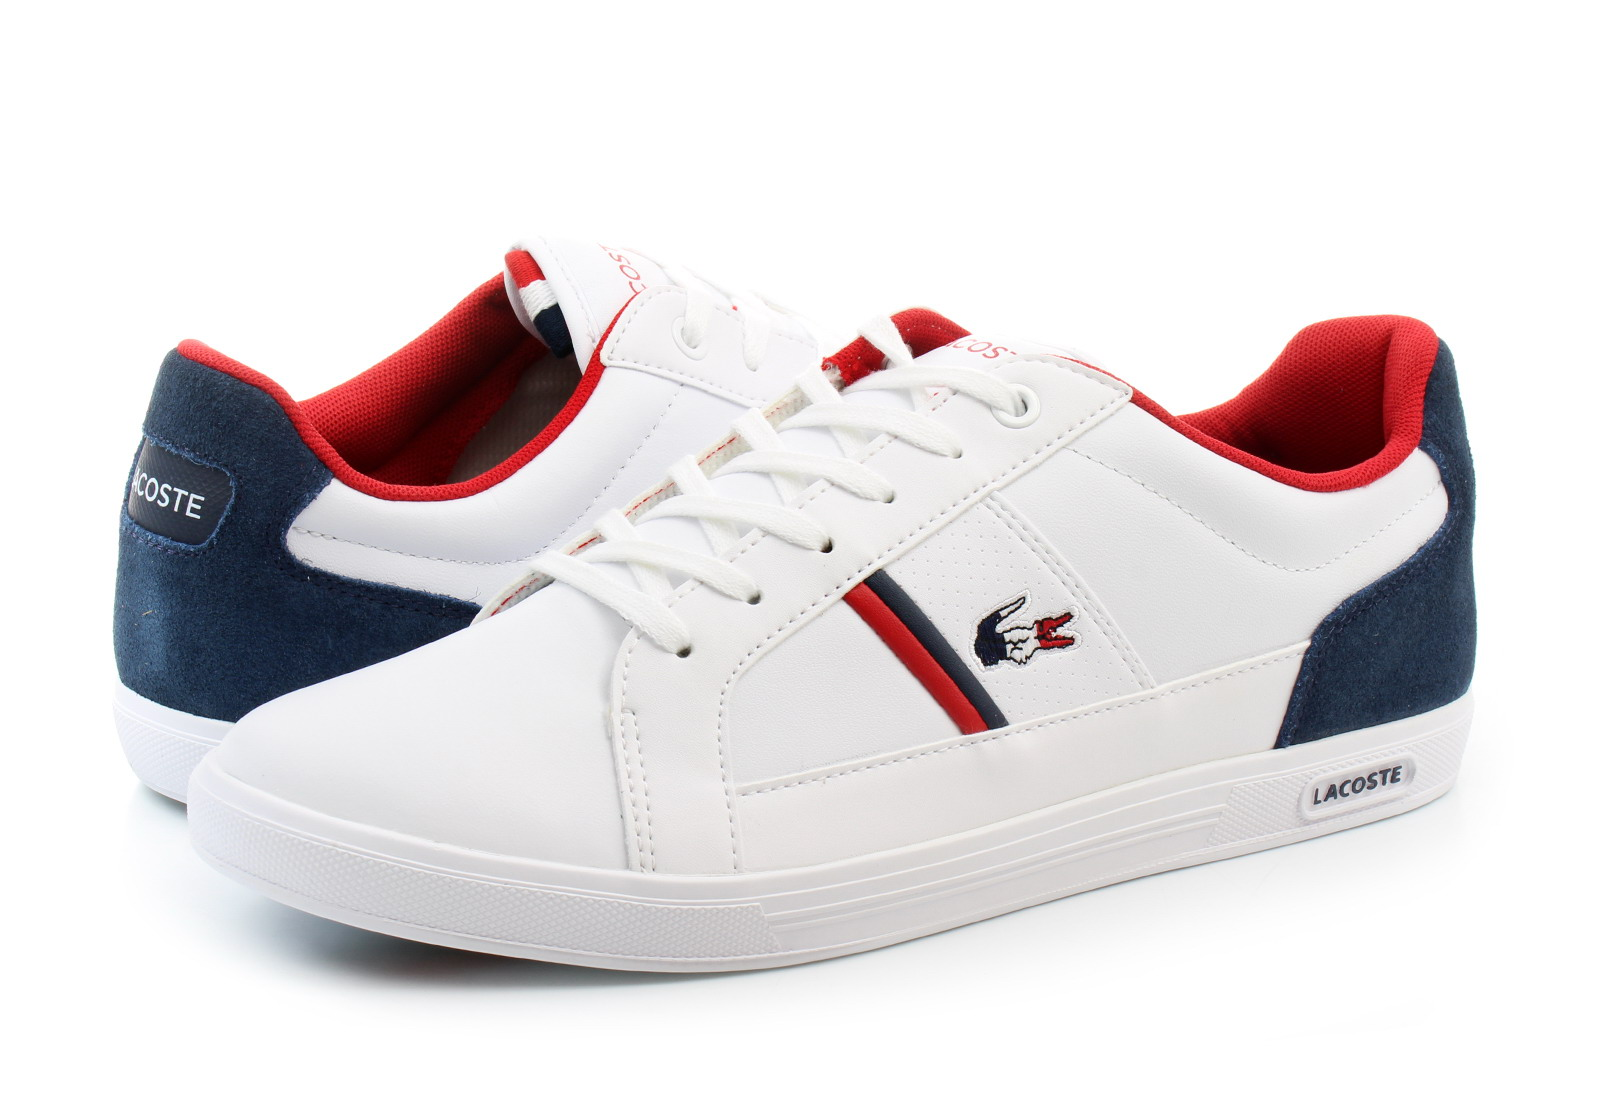 bcf1bffc037140 Lacoste Shoes - Europa - 173SPM0012-042 - Online shop for ...